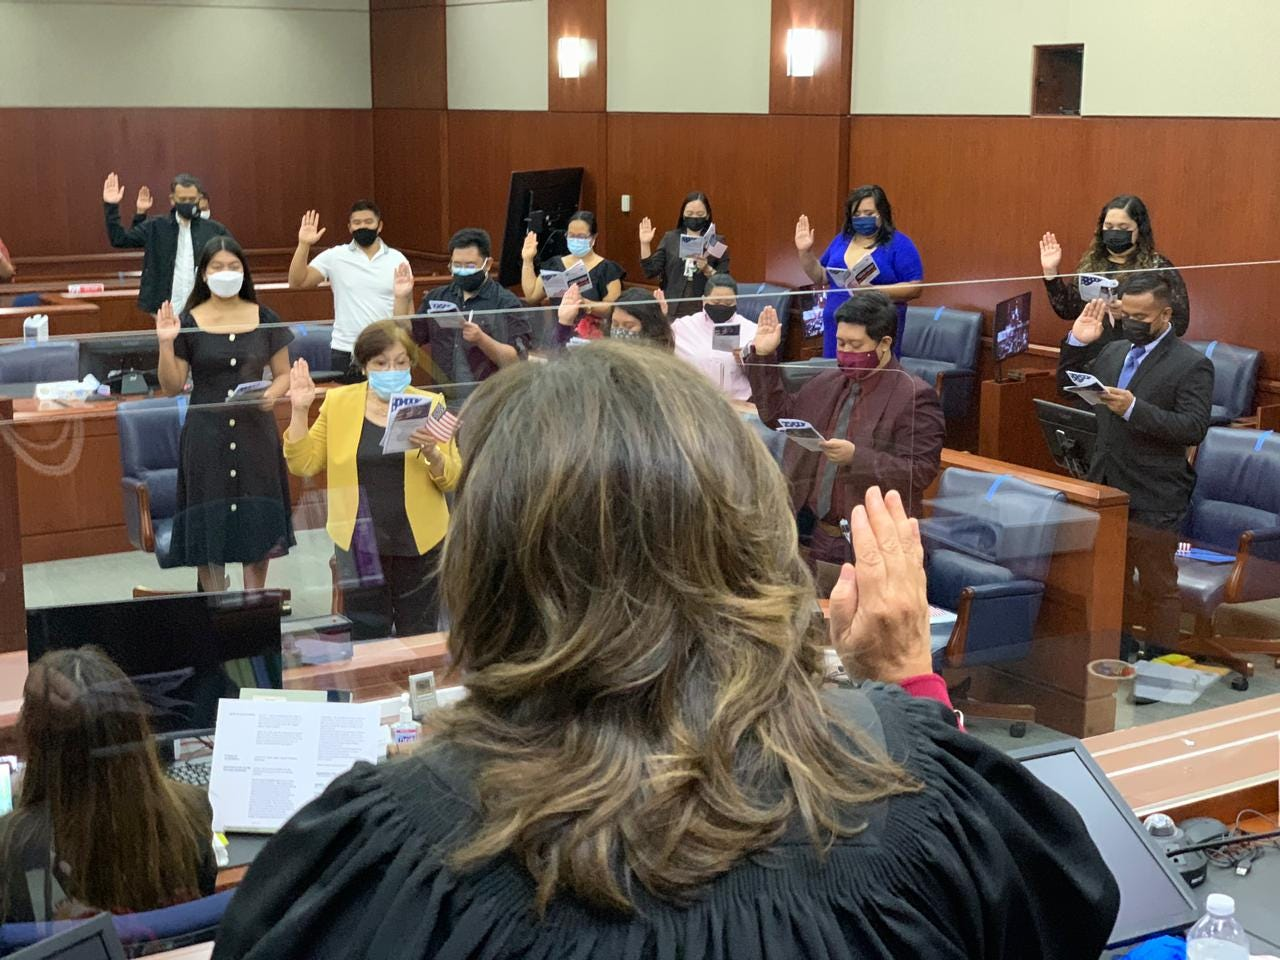 Forty-eight candidates became newly naturalized American citizens after reciting their Oath of Allegiance, administered by Chief Judge Frances Tydingco-Gatewood, during two separate ceremonies at the District Court of Guam in Hagåtña on Tuesday, Feb. 16, 2021. The candidates, originally from the Philippines, Japan and Thailand, attended the back-to-back ceremonies held in recognition of African American History Month.